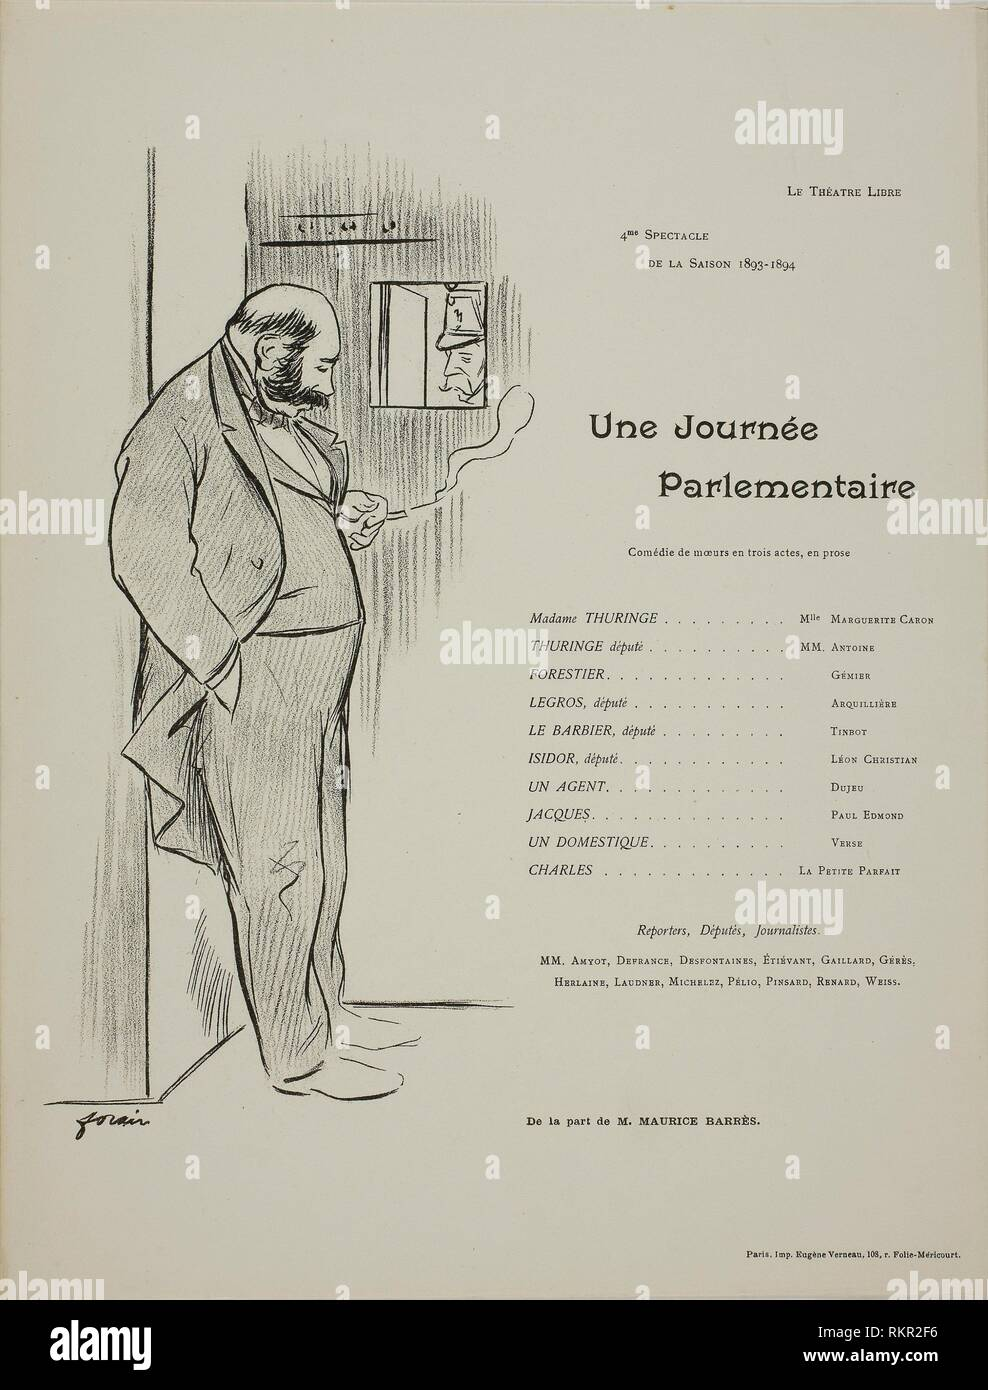 Theater Program for Une Journee Parlementaire - 1893–94 - Jean Louis Forain French, 1852-1931 - Artist: Jean Louis Forain, Origin: France, Date: - Stock Image